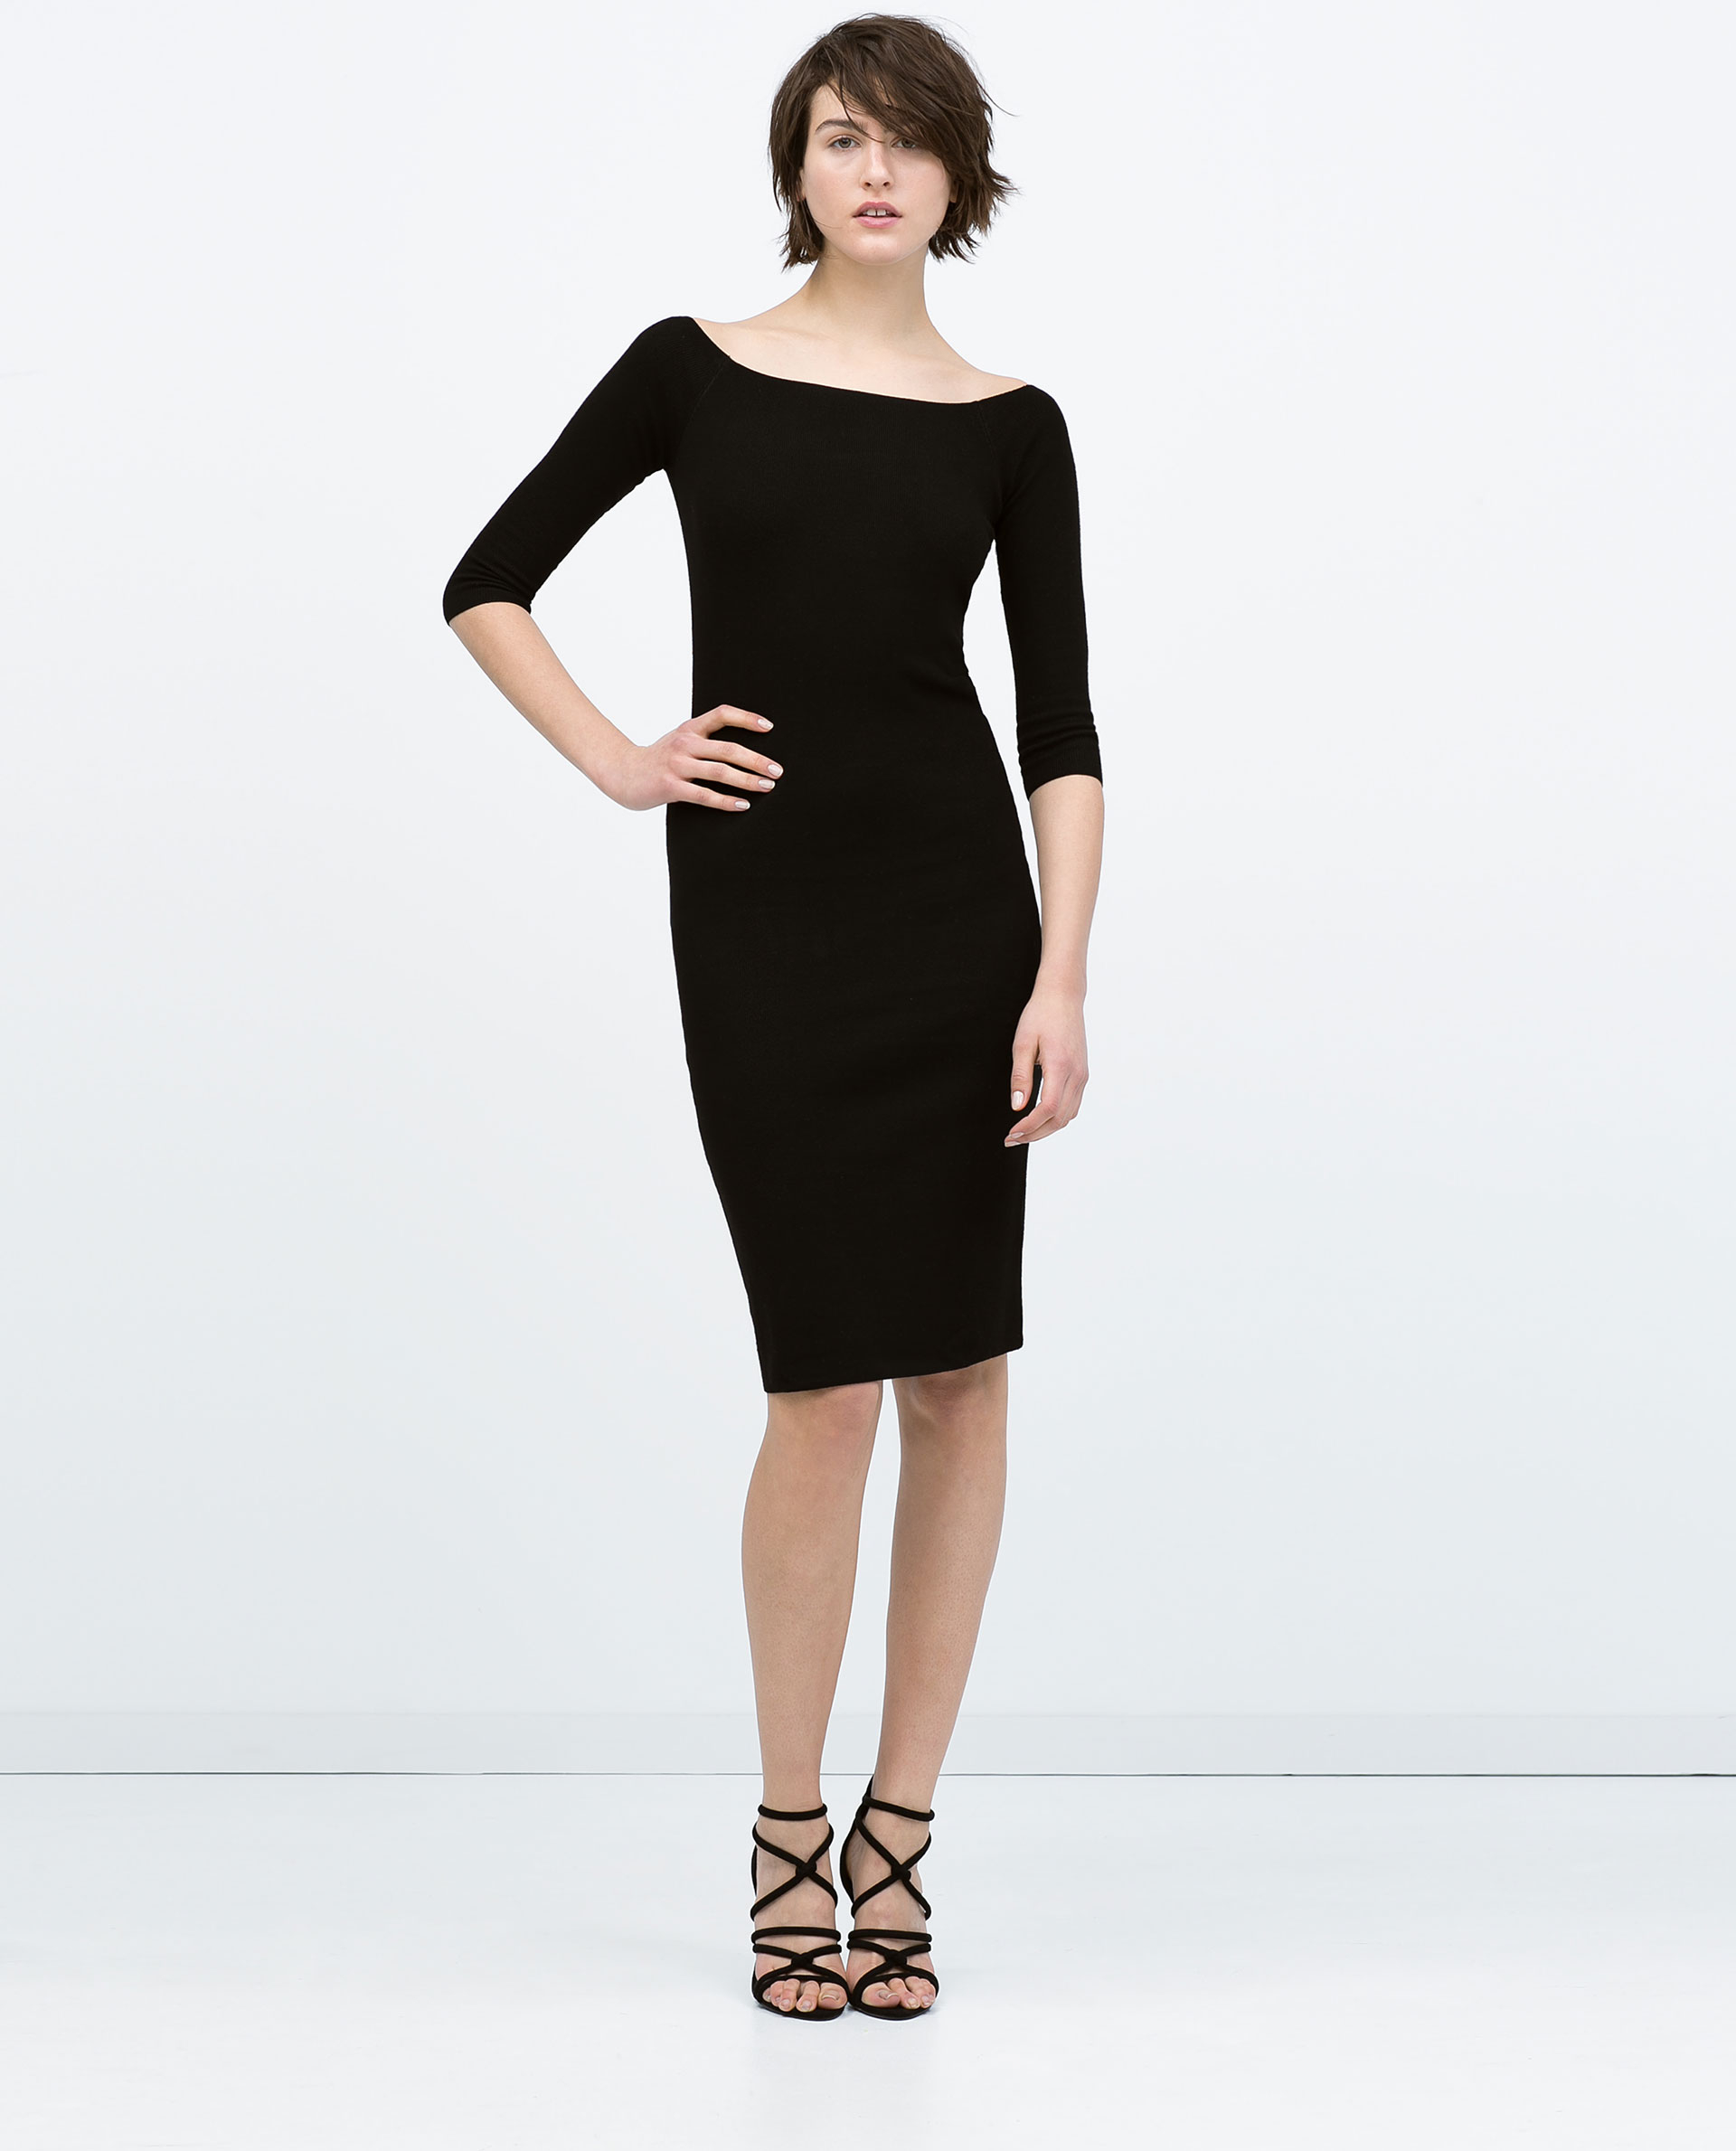 Simple Zarareddresswithzipsatbackdresswithzipsatbackproduct3